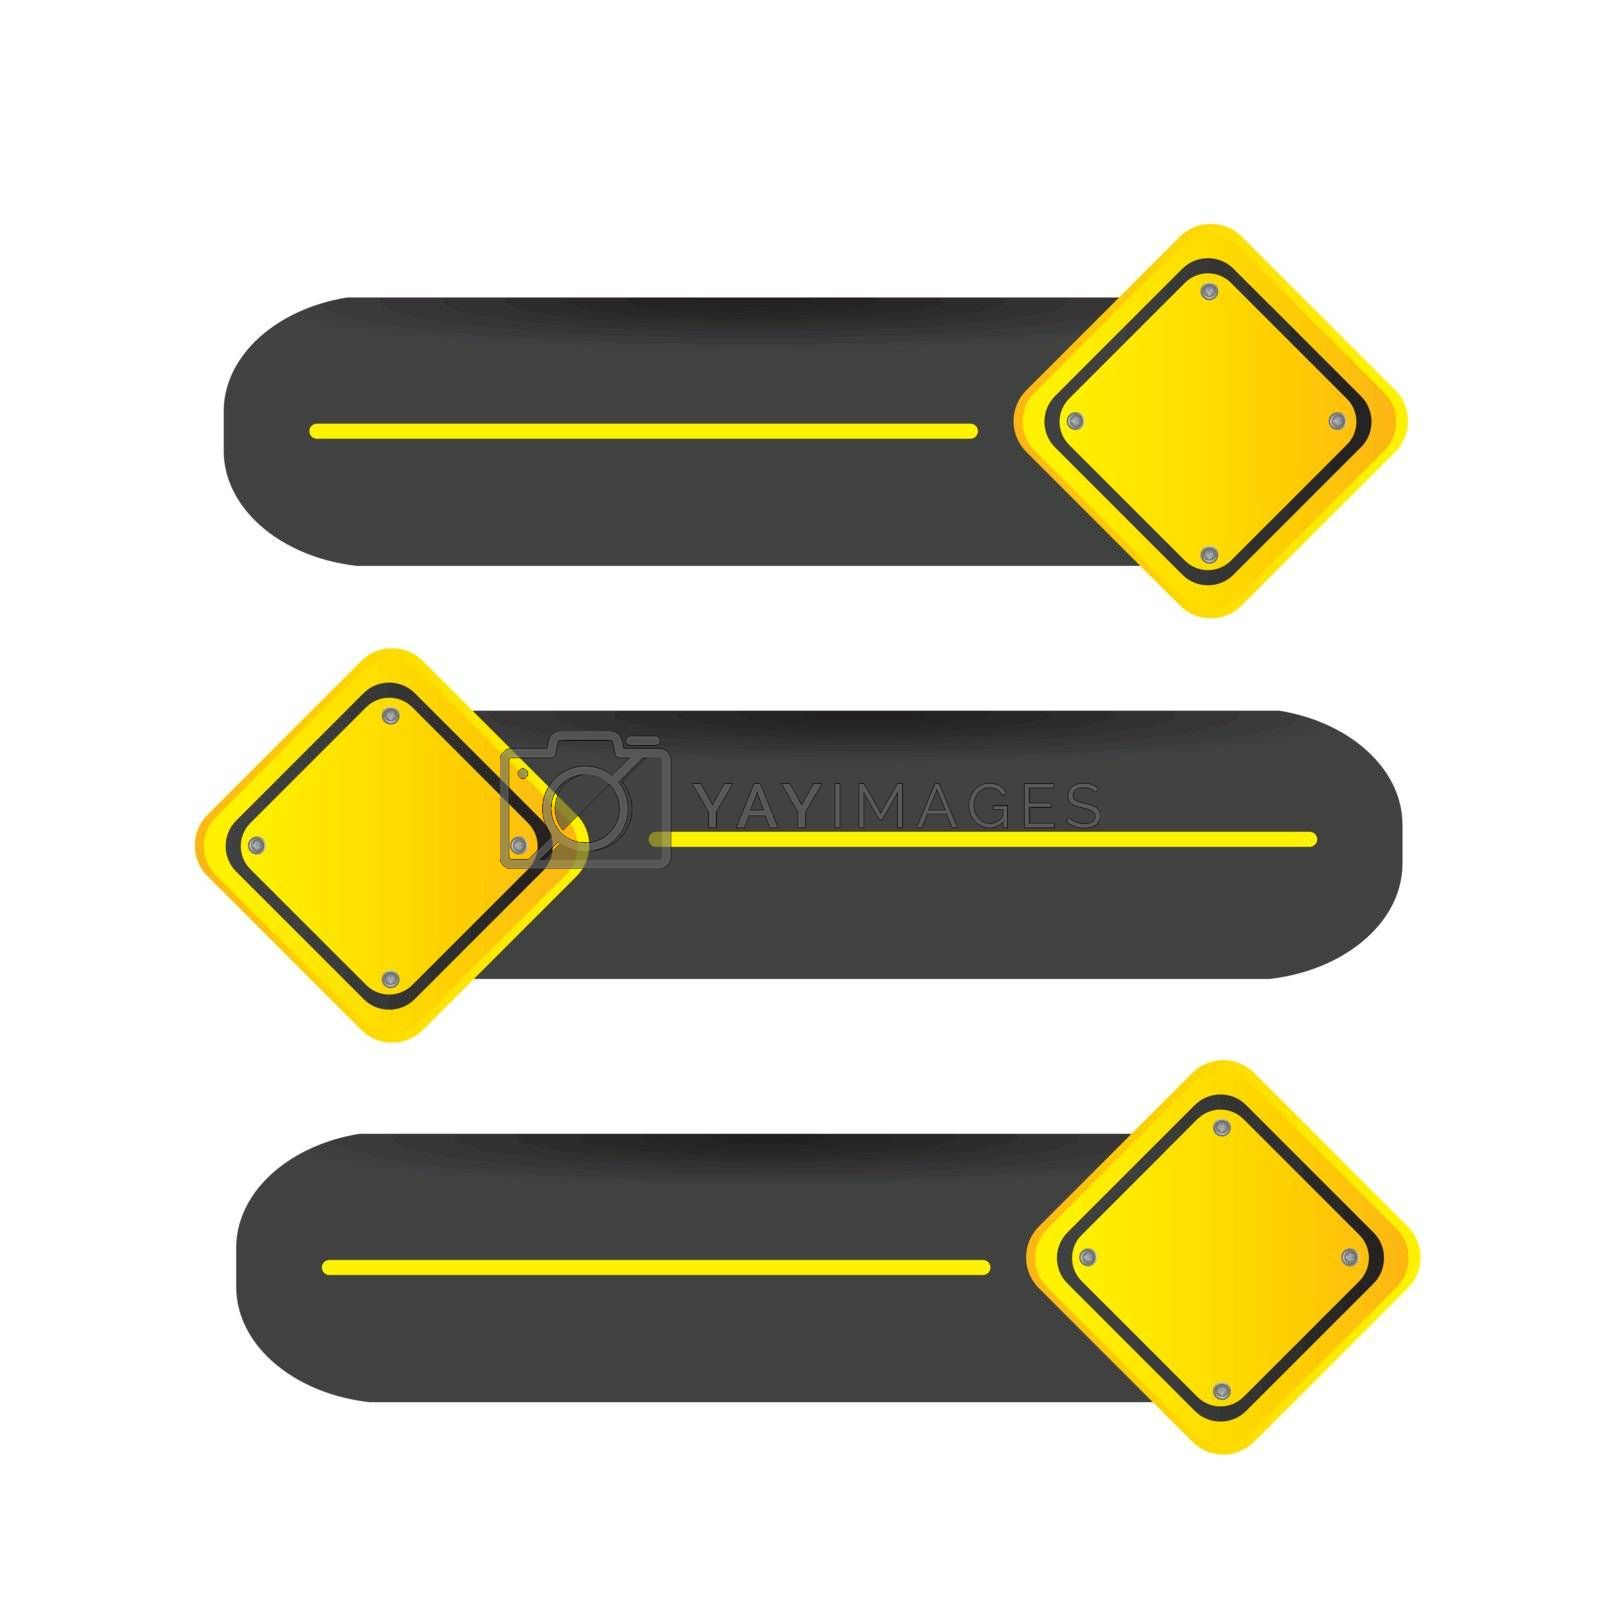 driving signal in different directions